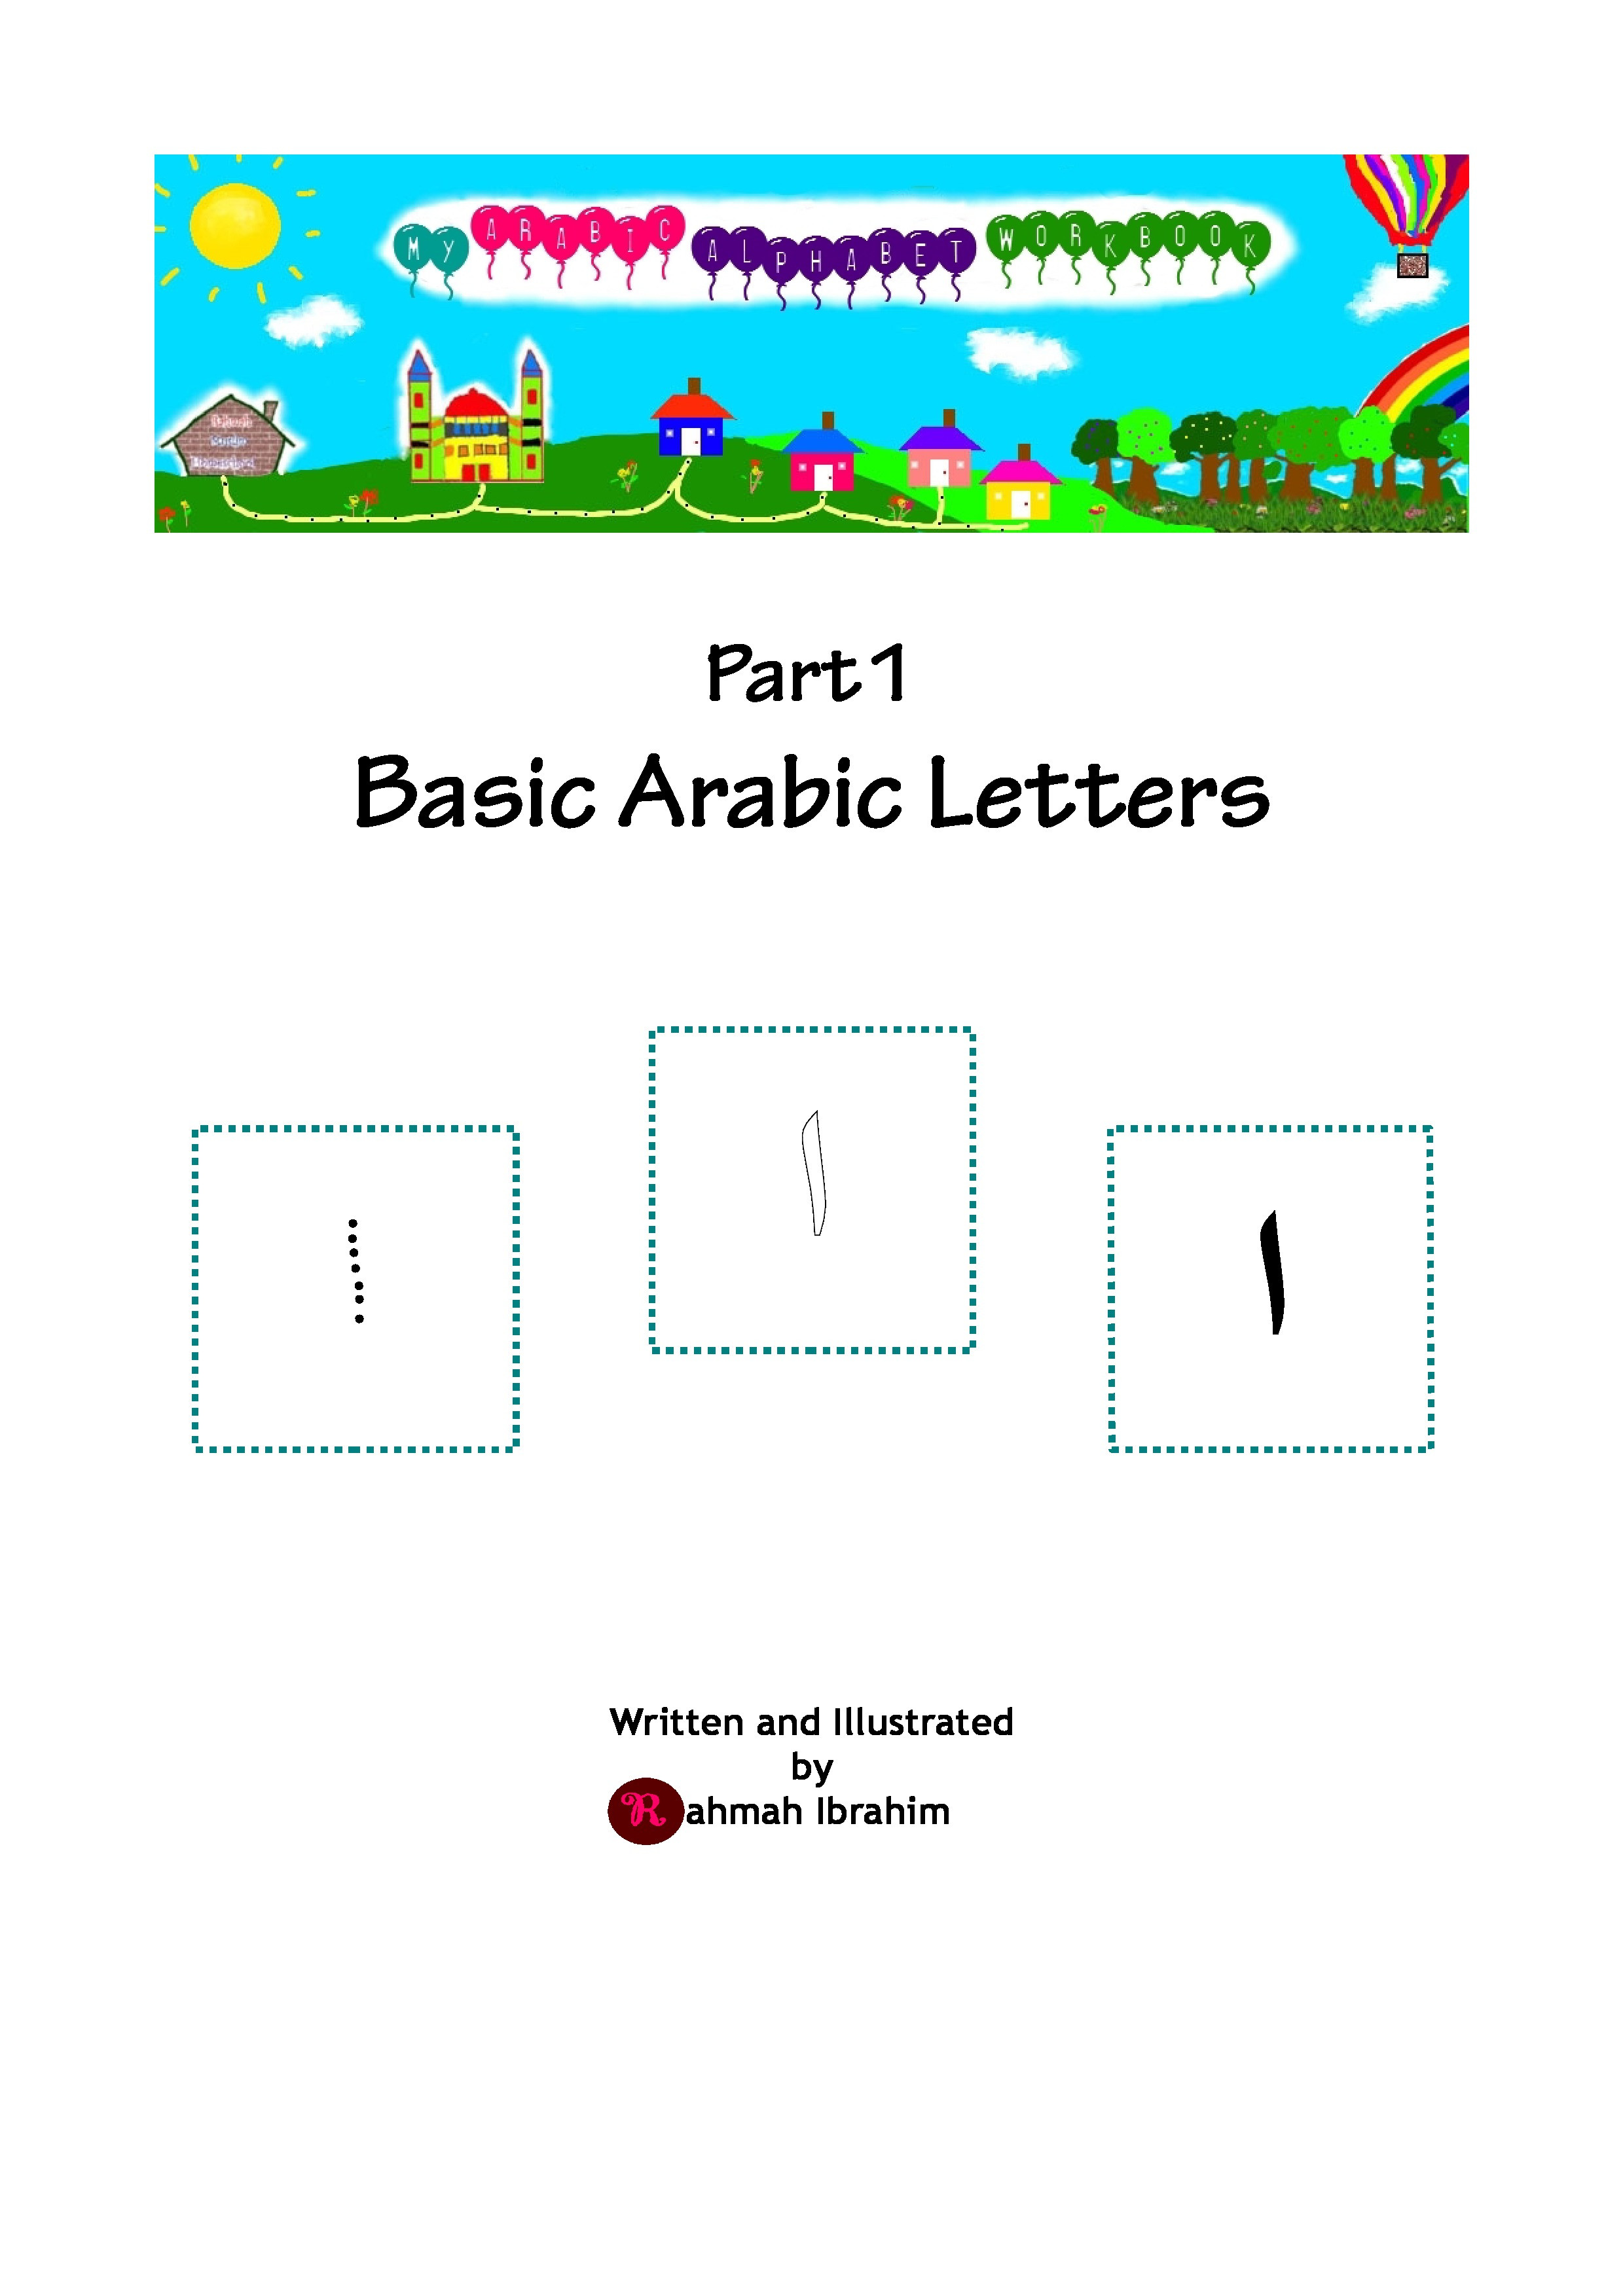 Arabic Alphabet Worksheets Printable Free Ebook My Arabic Alphabet Workbook Pt 1 Basic Arabic